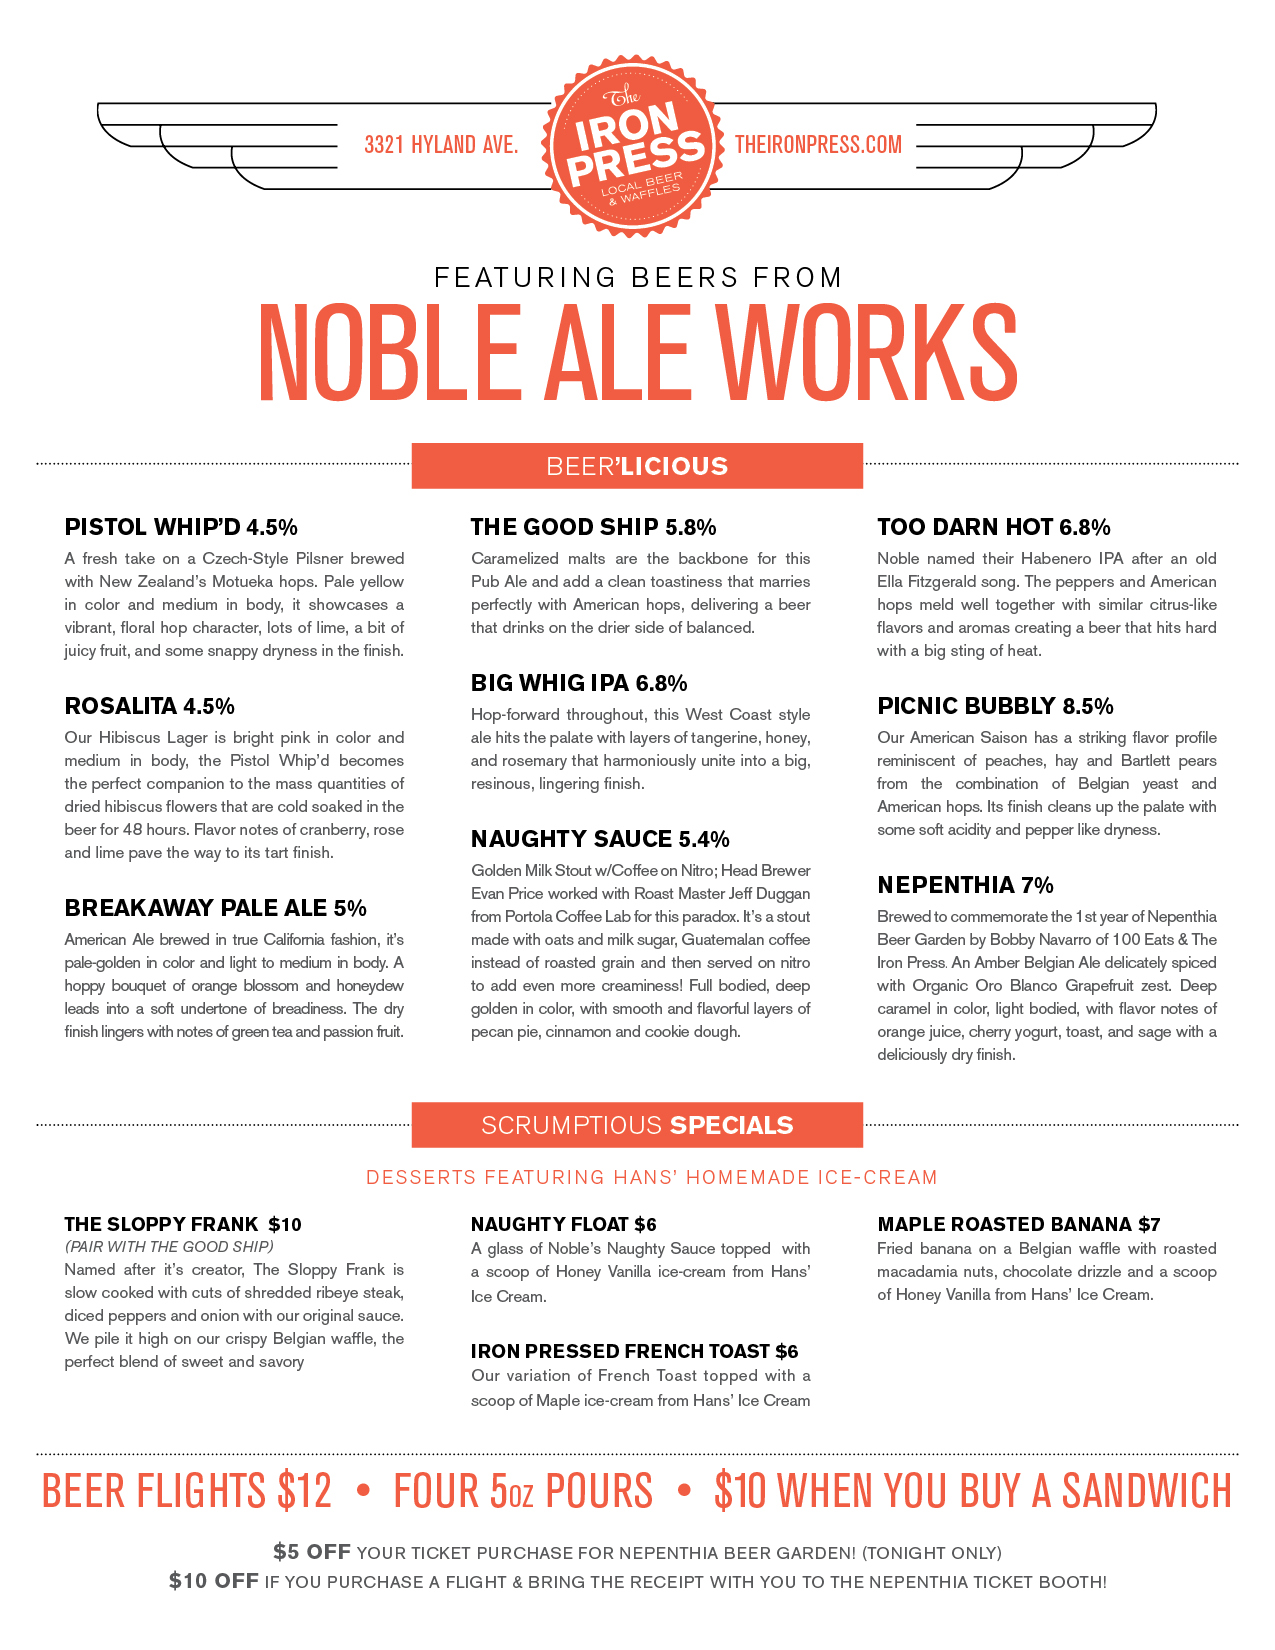 Noble Ale Works x Hans' Homemade Ice Cream x Nepenthia x The Iron Press